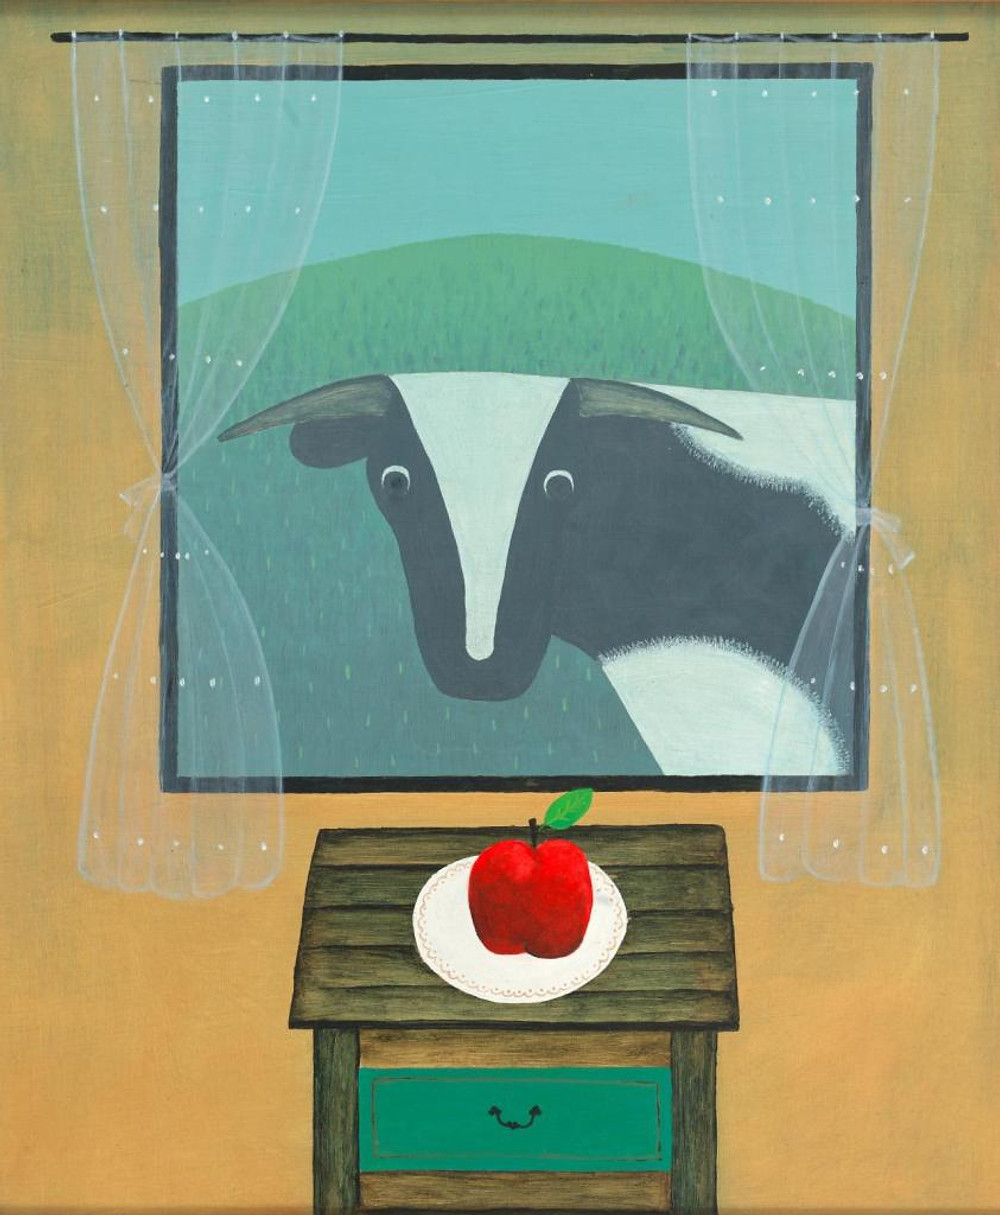 Ivan Durrant Cow looking at apple through window